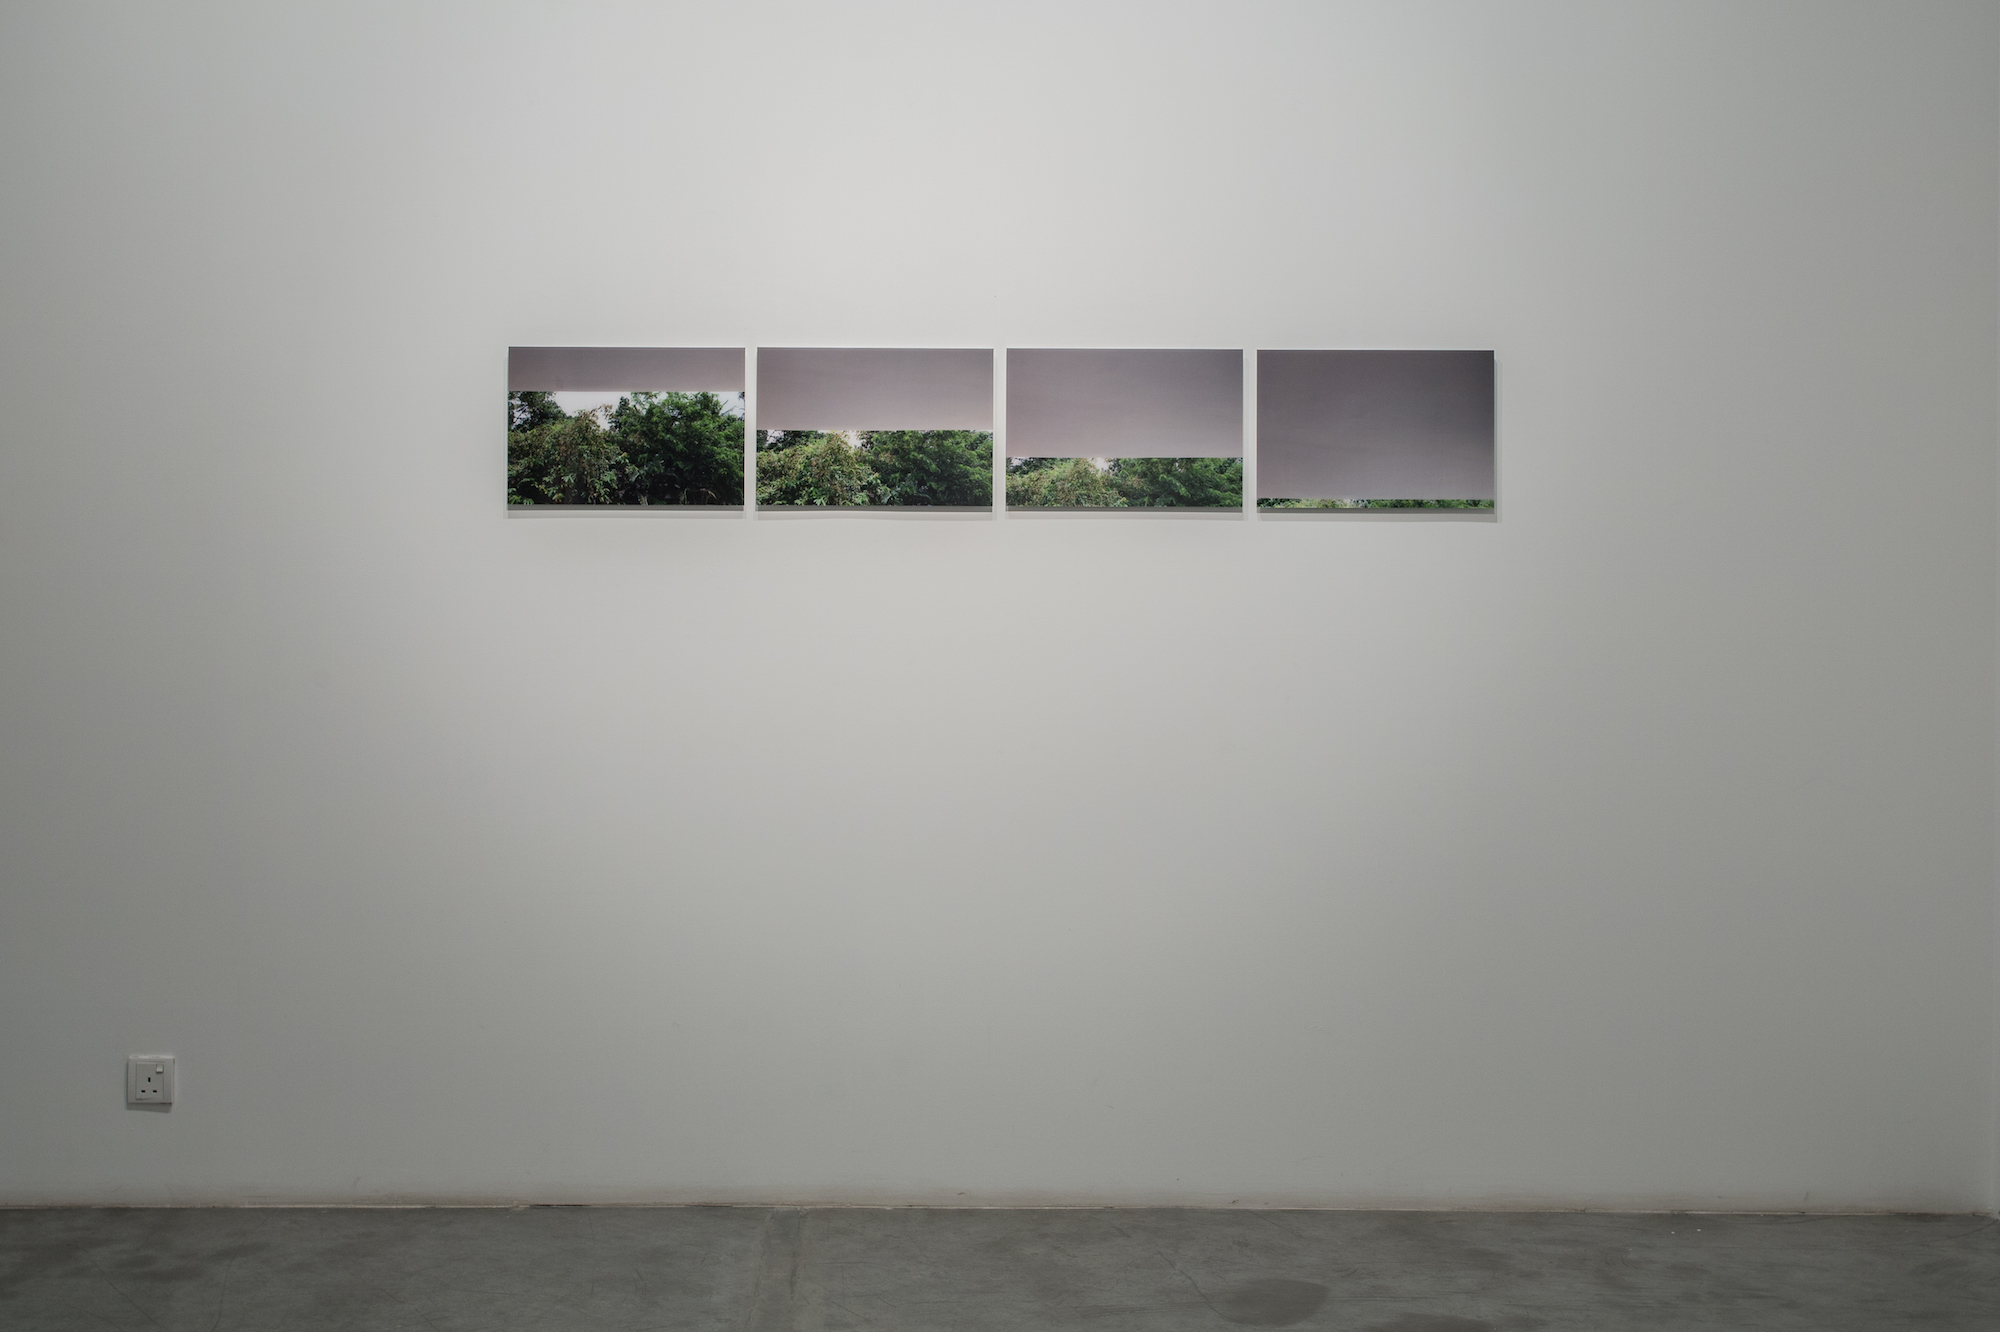 Interruptions 1 (set of 4) 2014 C-type prints, diasec 30.48 x 45.72 cm each Edition 5 + 2AP